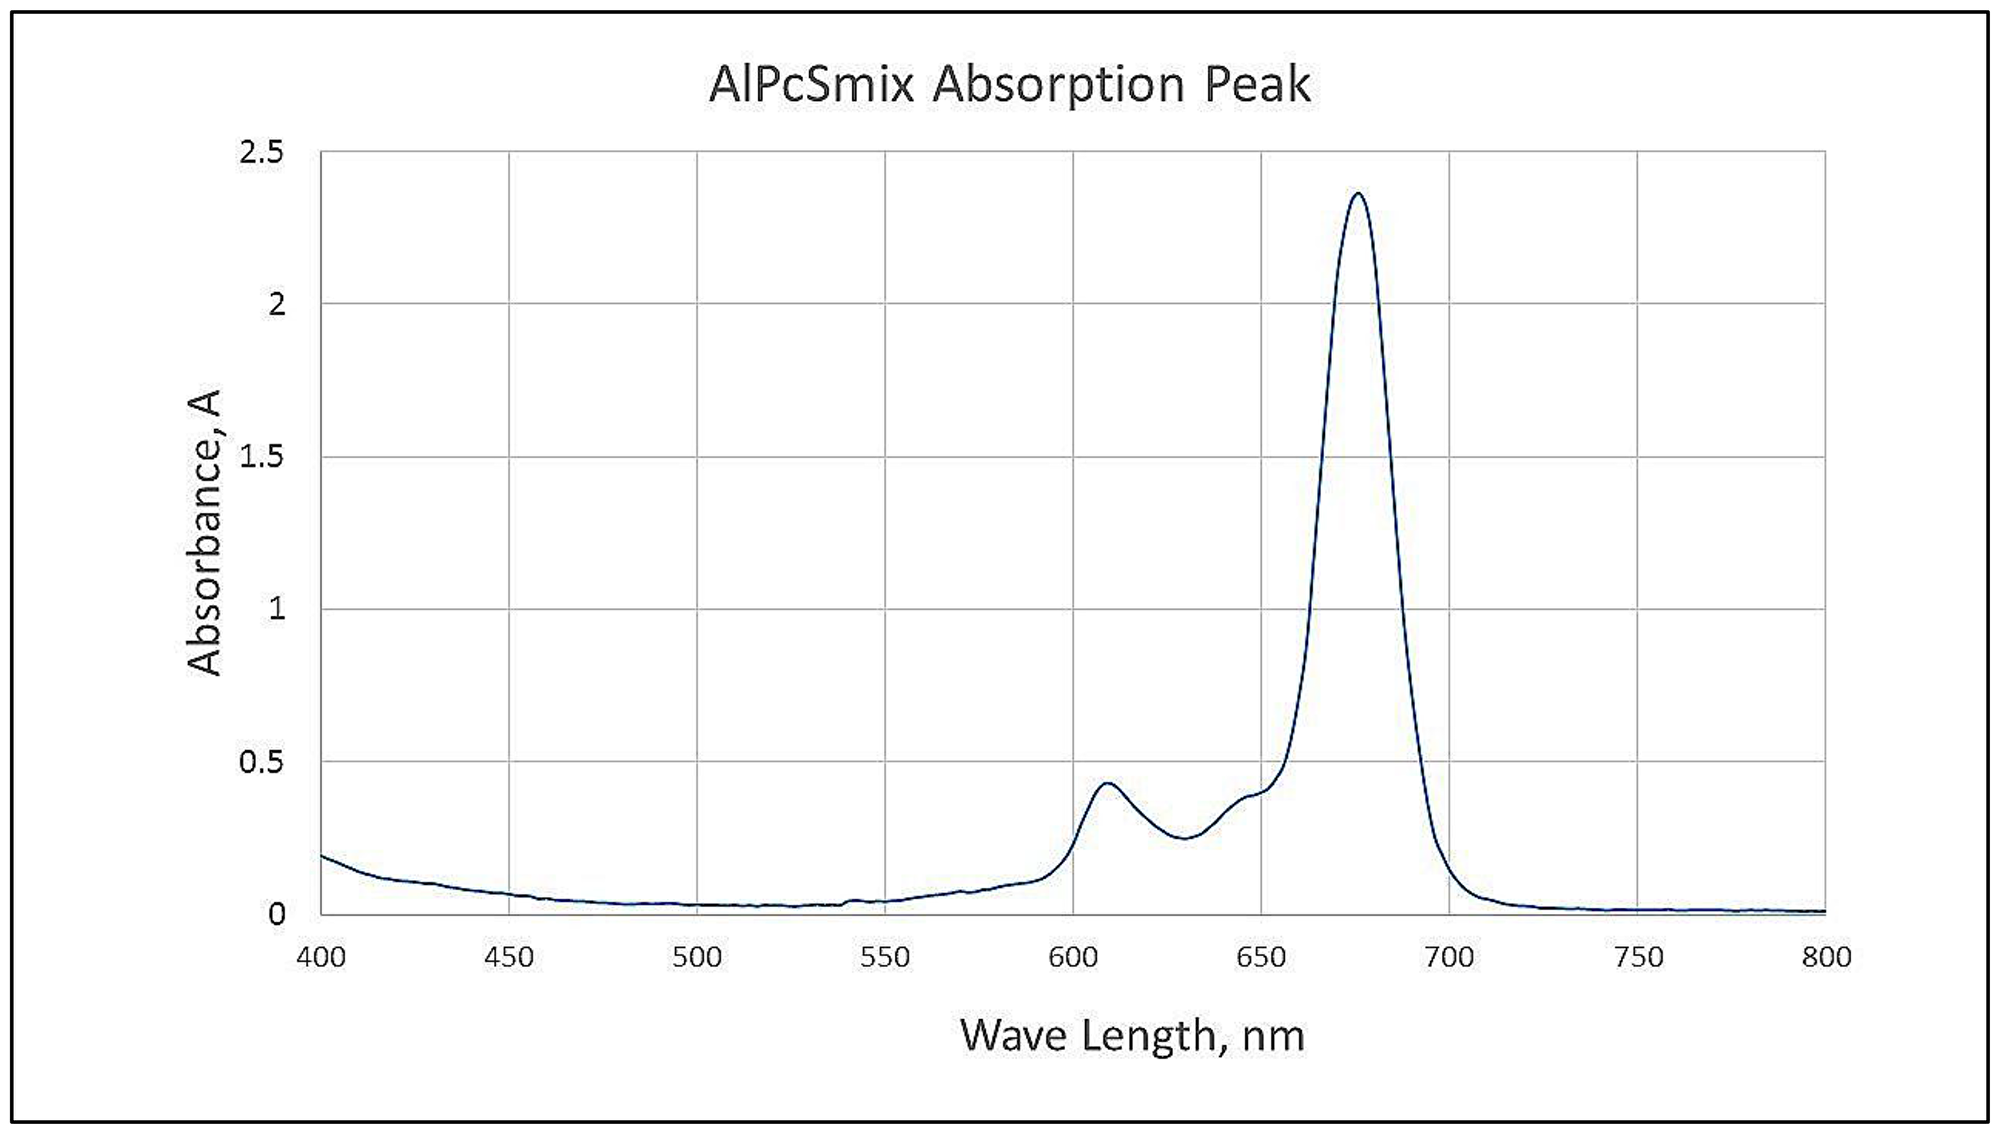 Spectrophotometric analysis of AlPcSmix showing the maximum absorption/excitation peak at 674 nm.